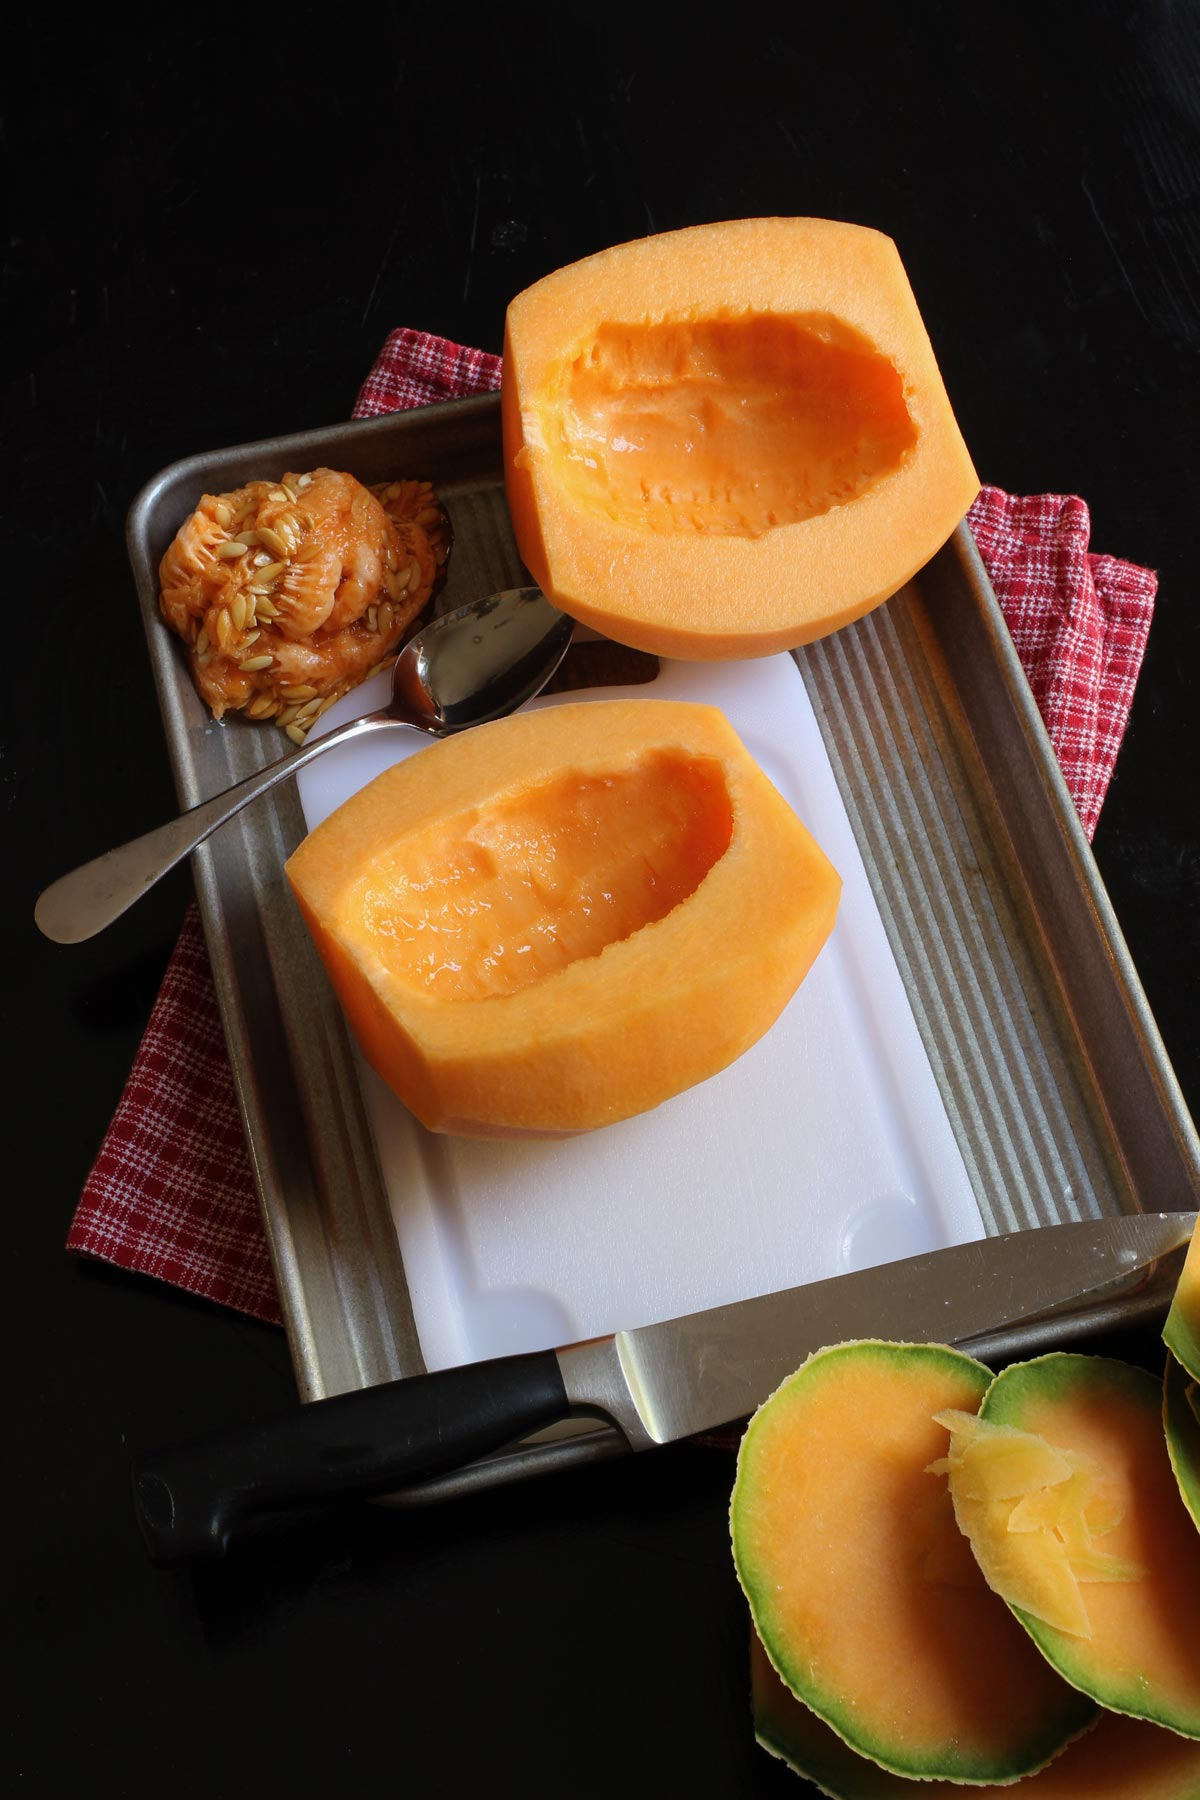 cantaloupe halves without seeds on cutting board with pile of seeds nearby.